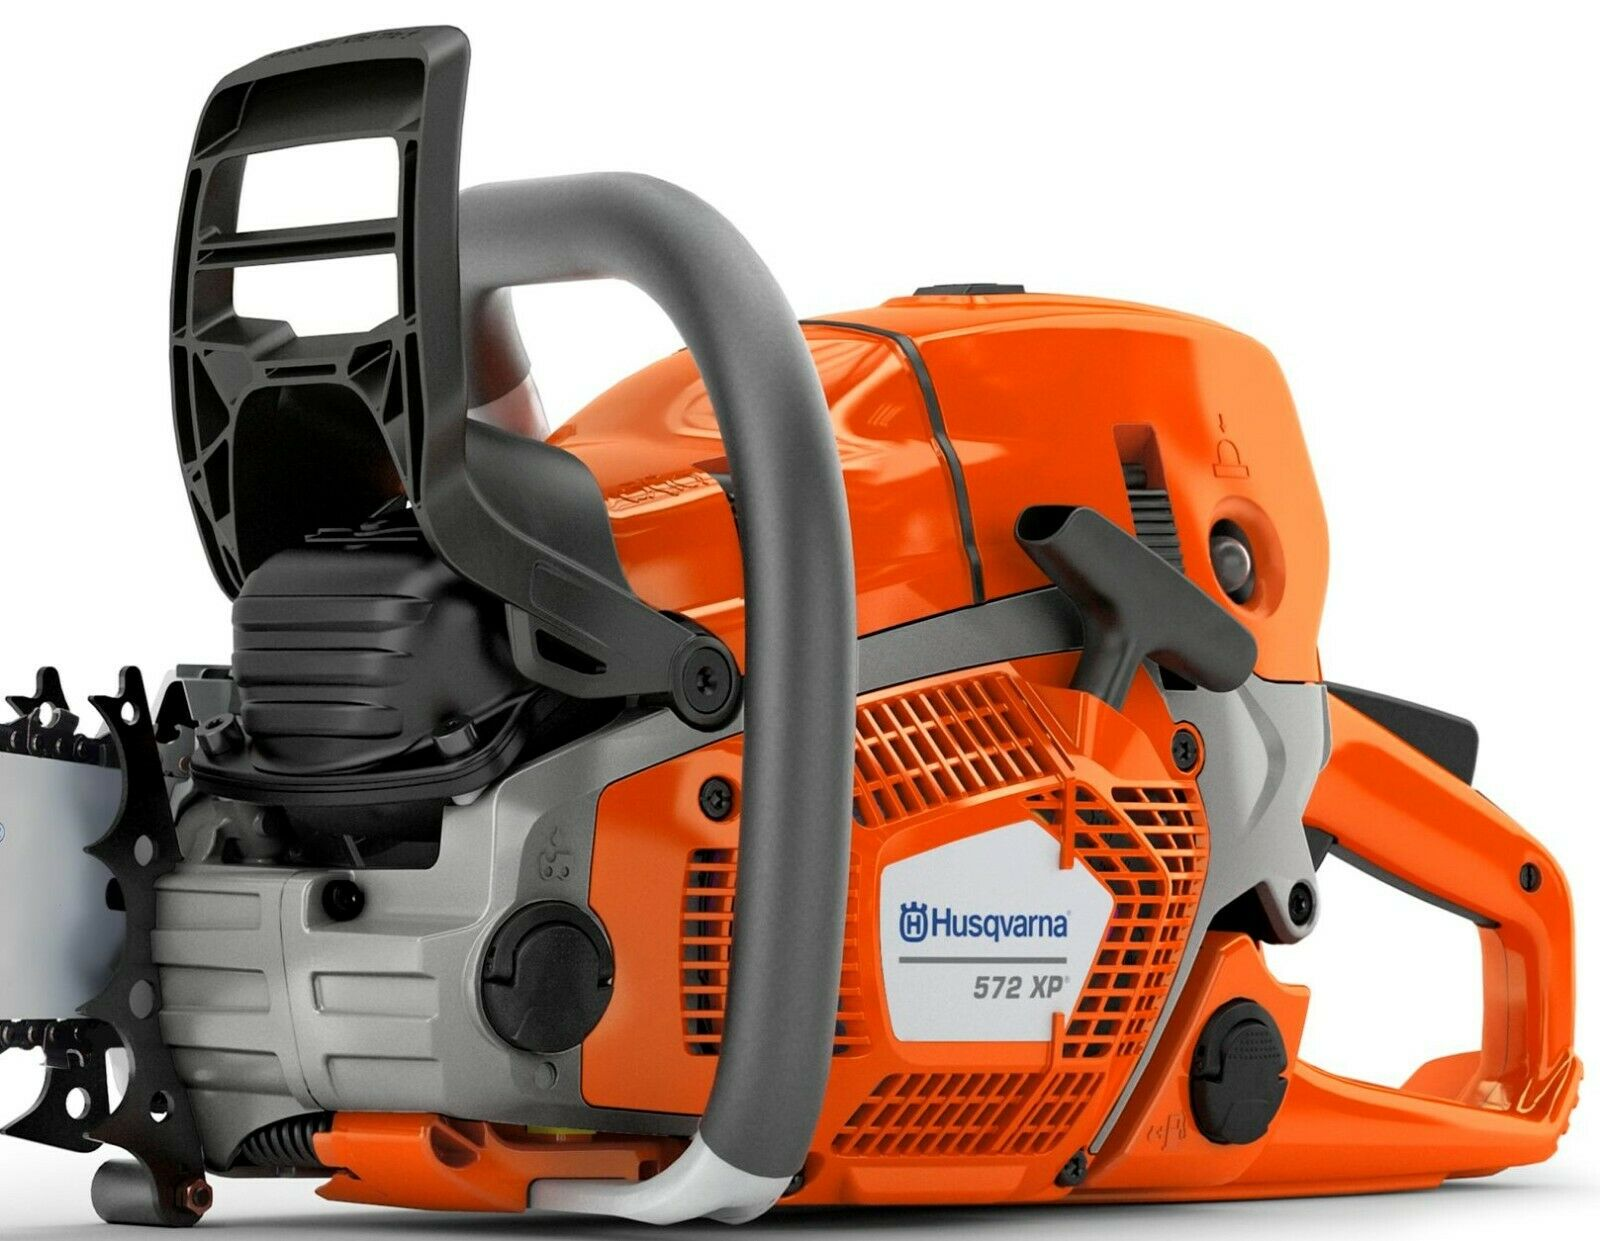 Husqvarna 572XP Chainsaw Power Head Only. Available Now for 980.00